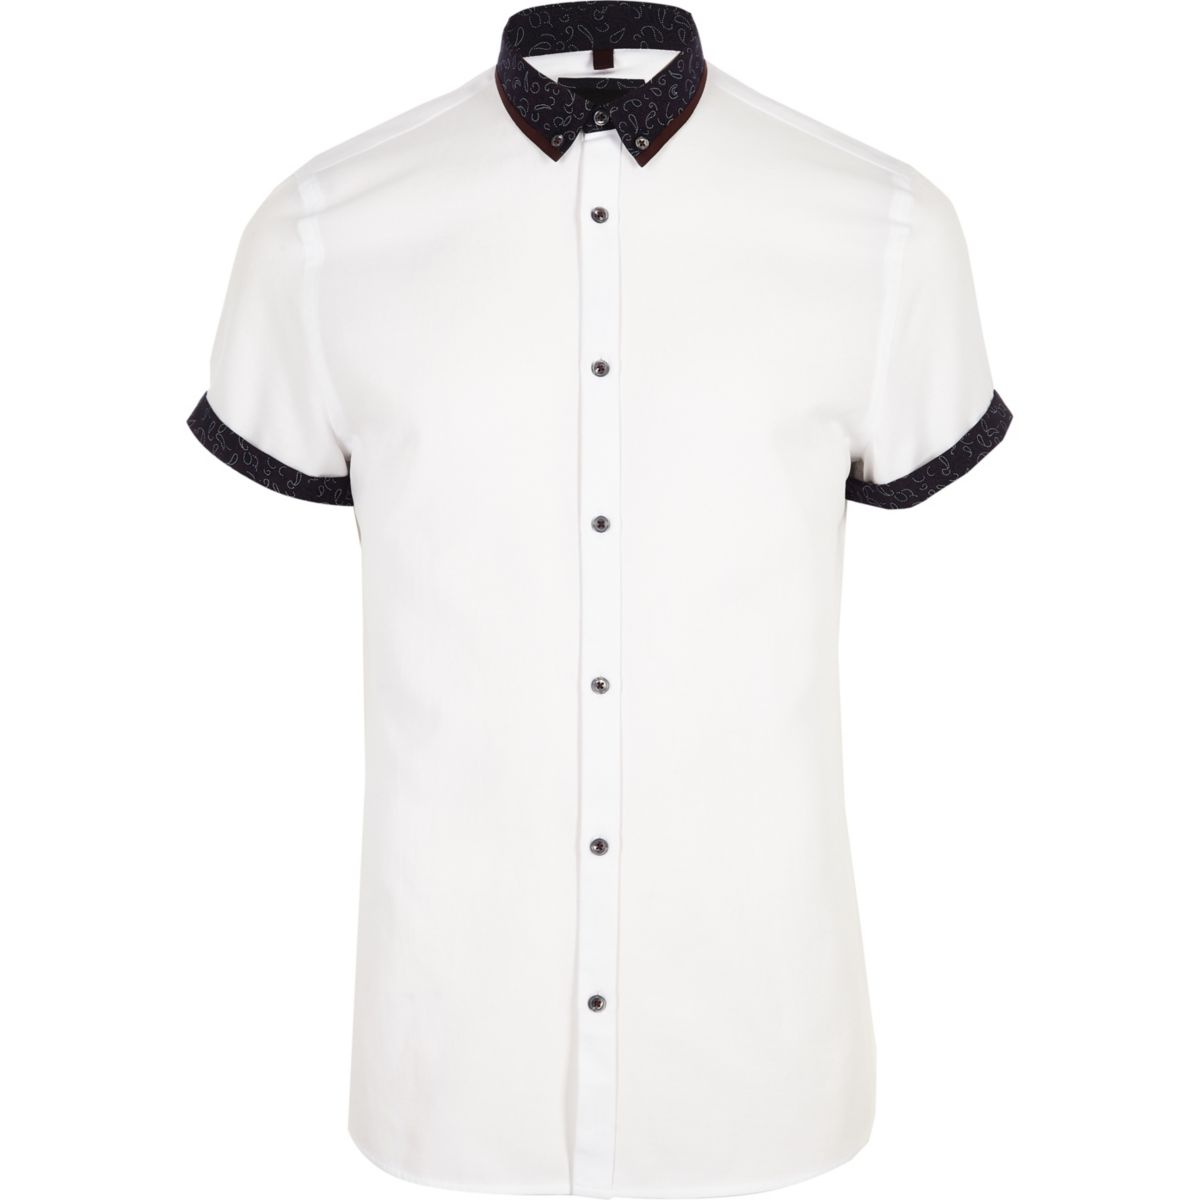 Cheap Huge Surprise Factory Price Mens White double collar slim fit shirt River Island 6pvuw85vb